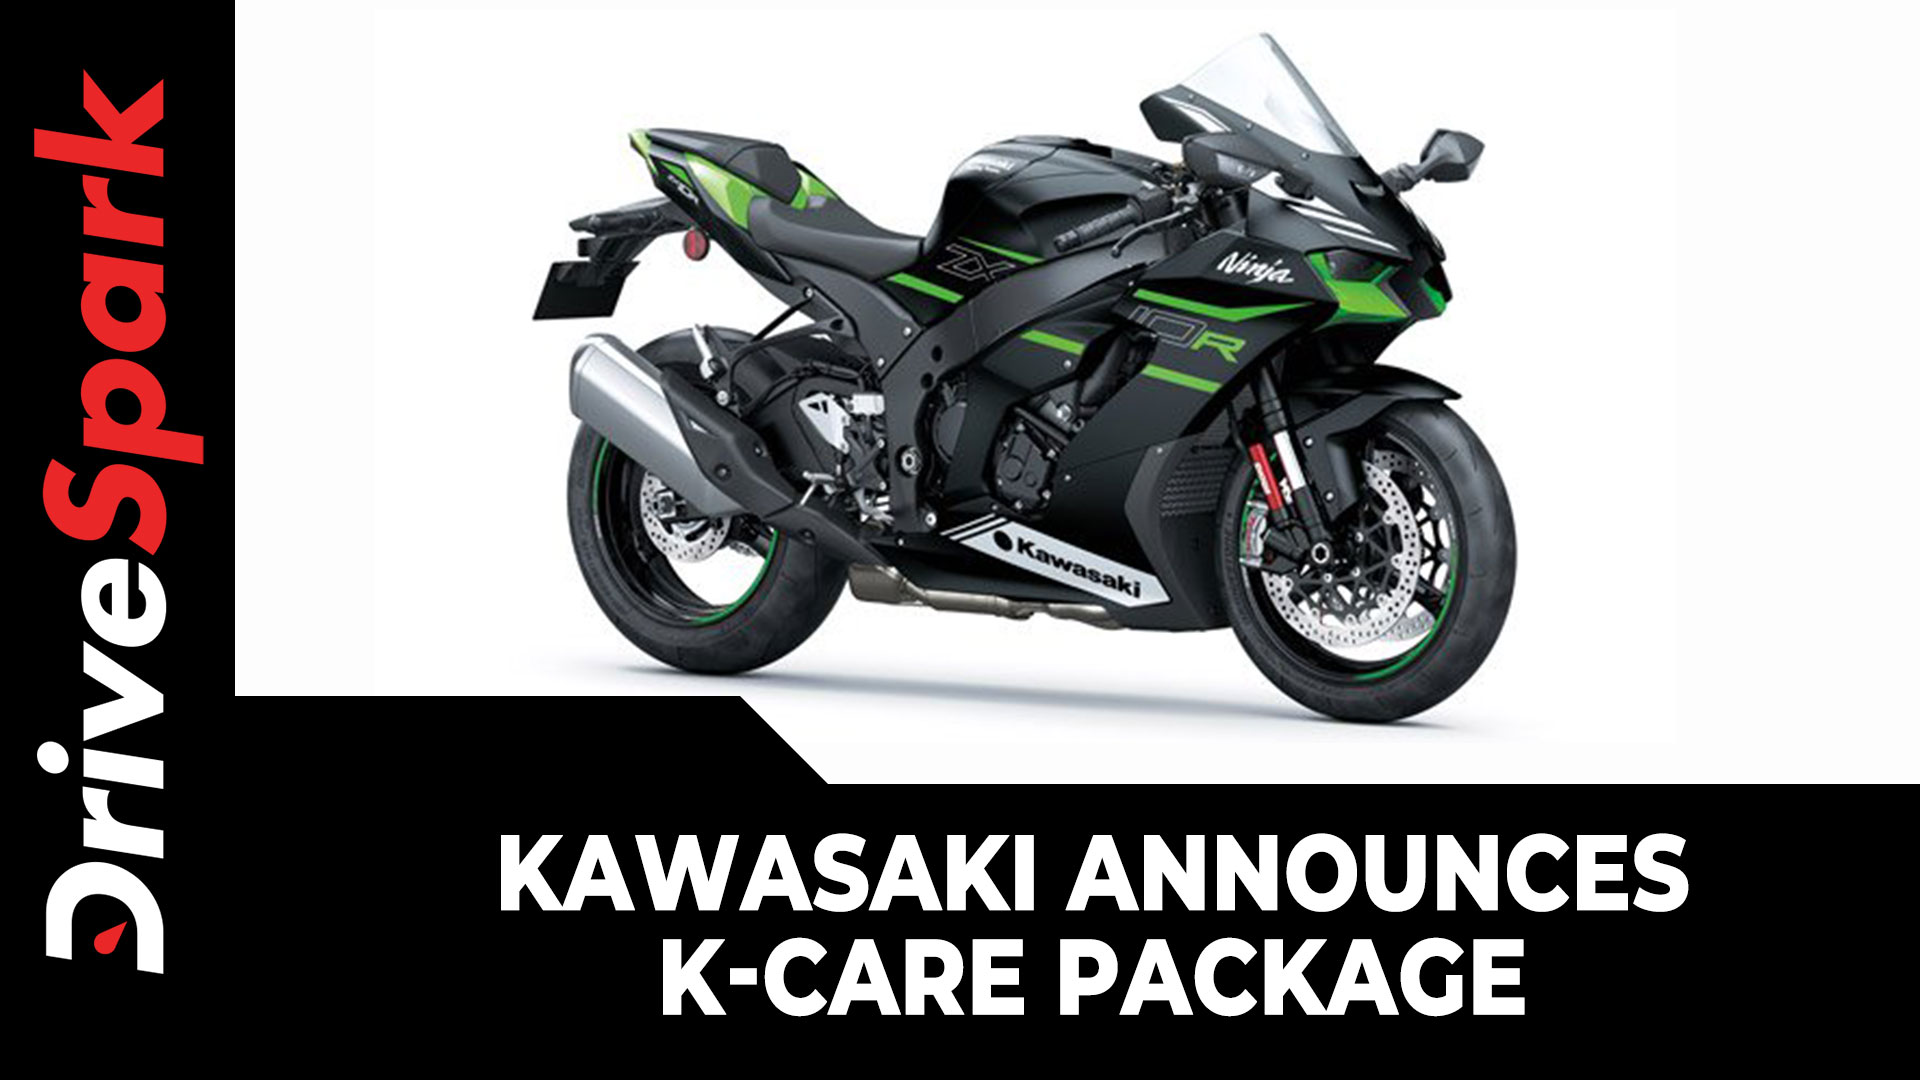 Kawasaki Announces K-Care Package | Extended Warranty, AMC & Other Details